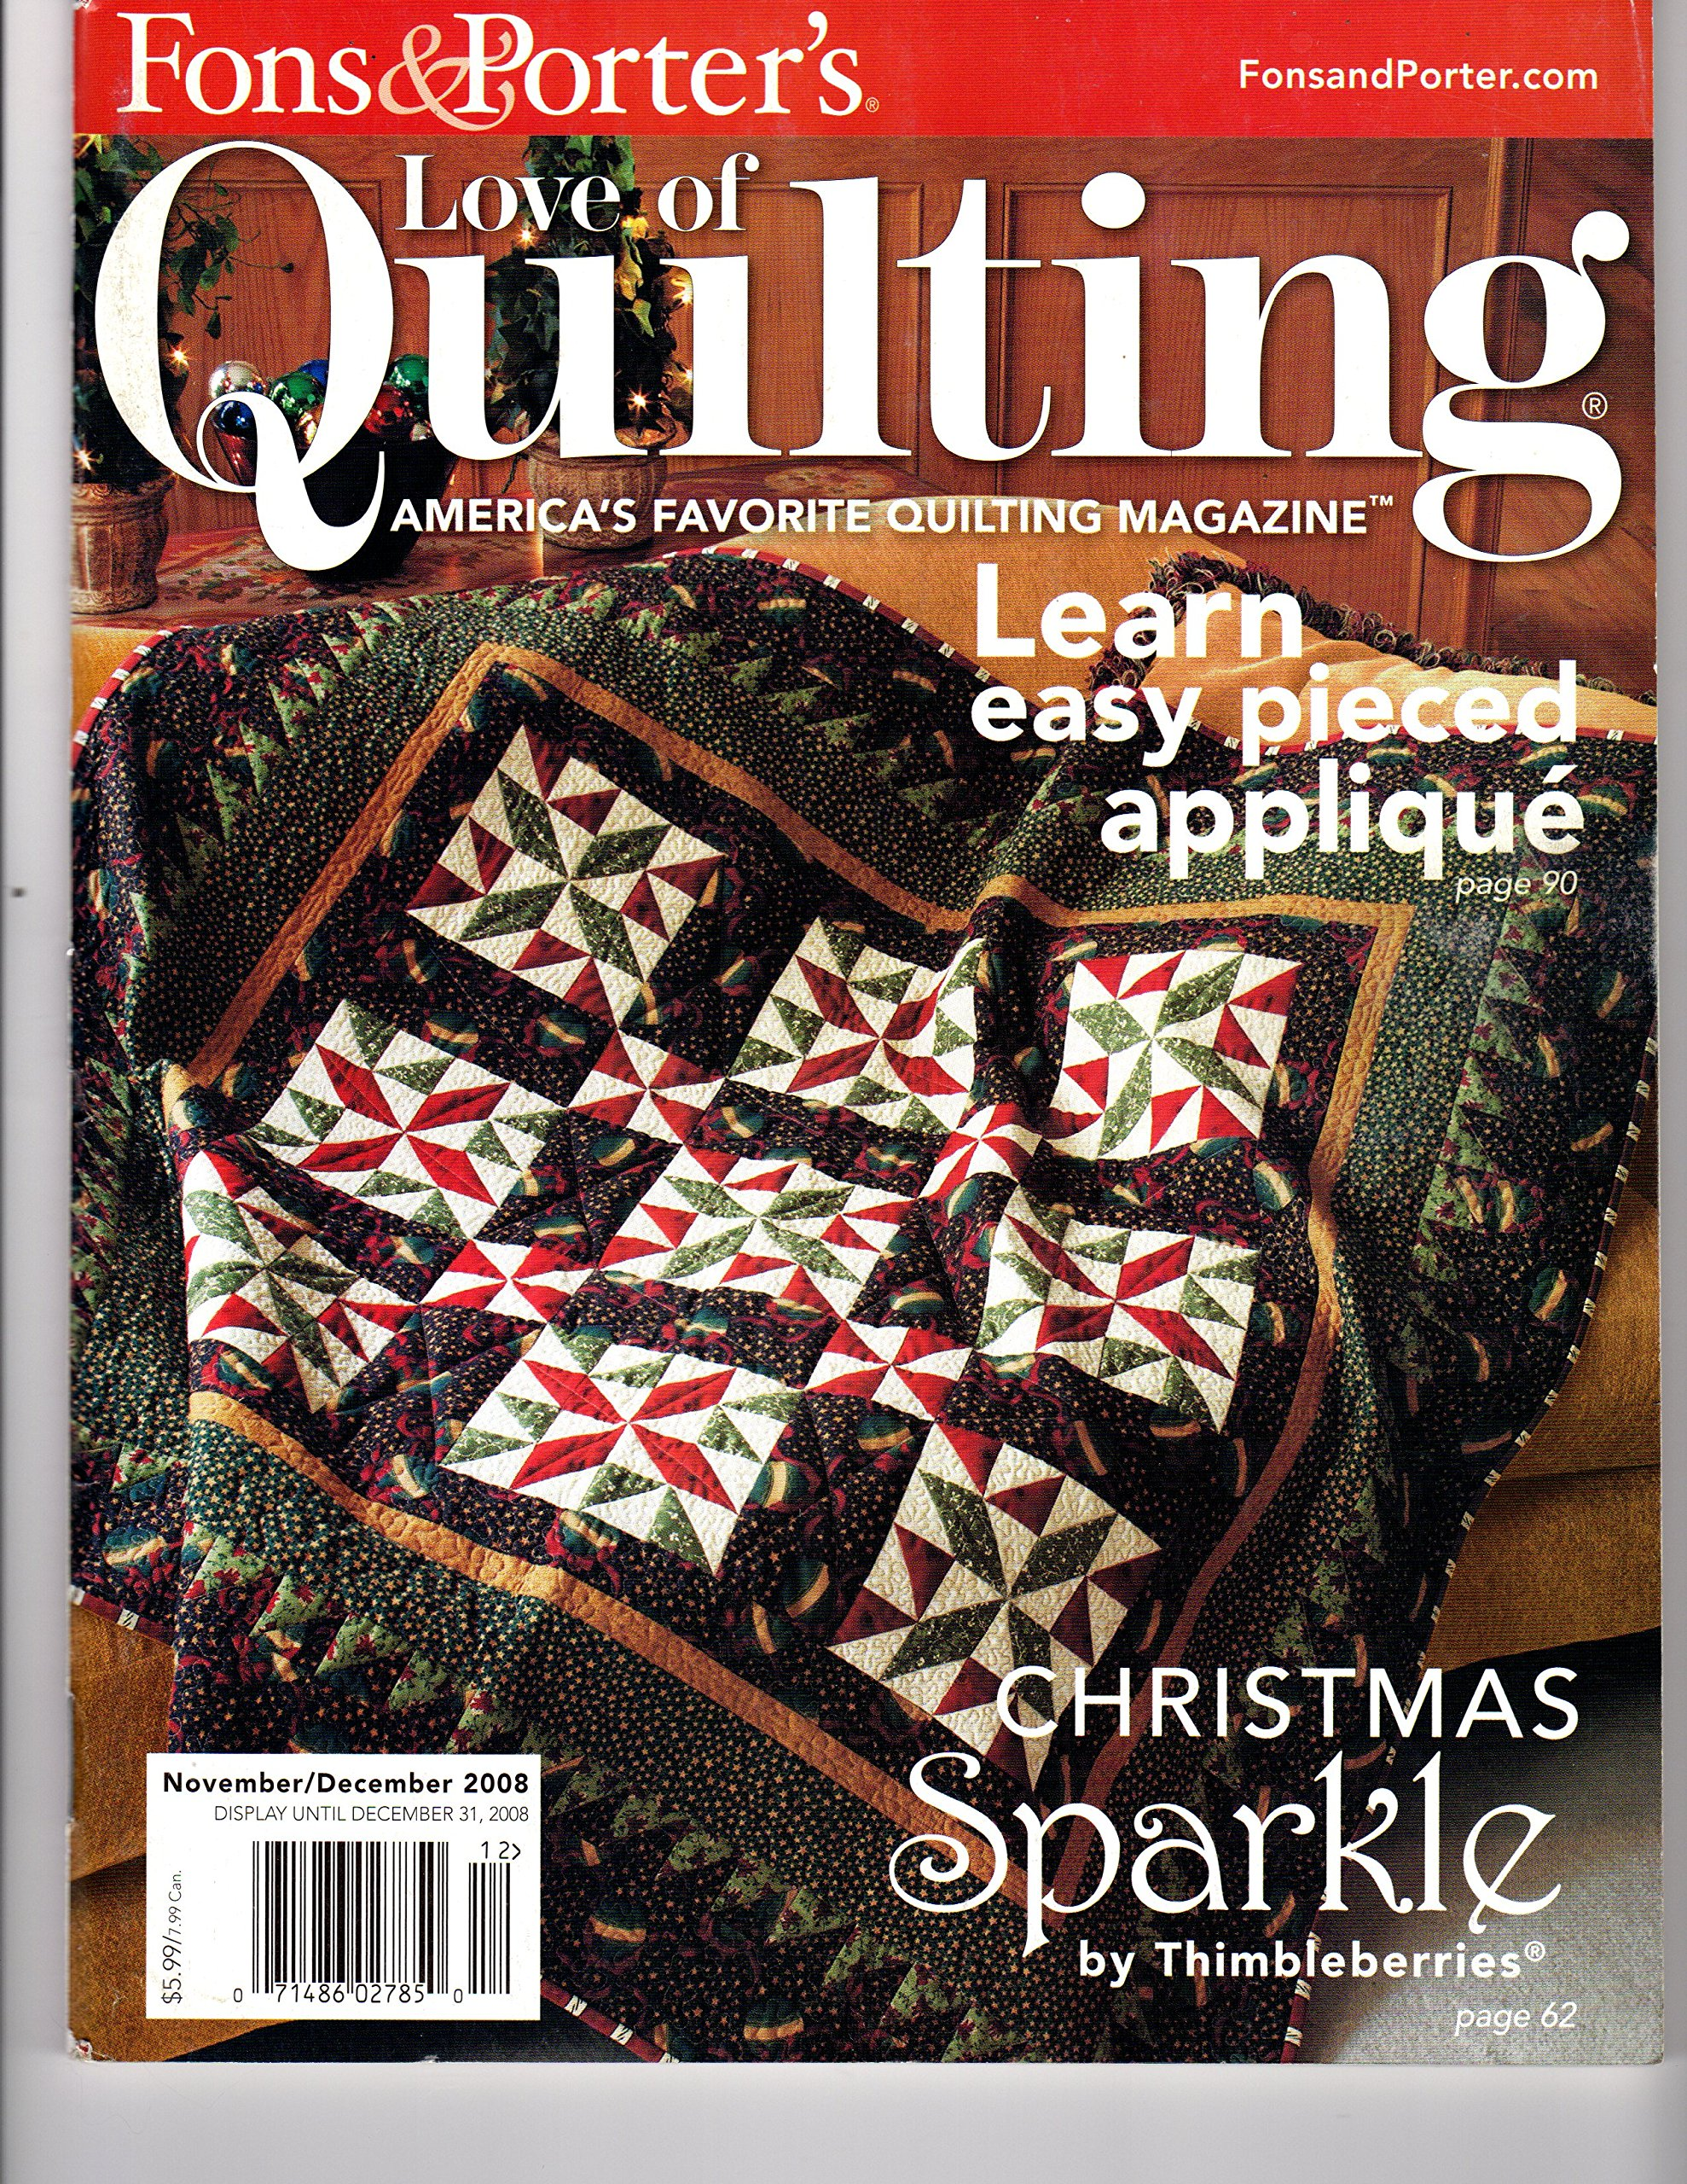 {Quilting} Fons and Porter's for the Love of Quilting {Volume 13, Number 5, Issue #78, November/December 2008}